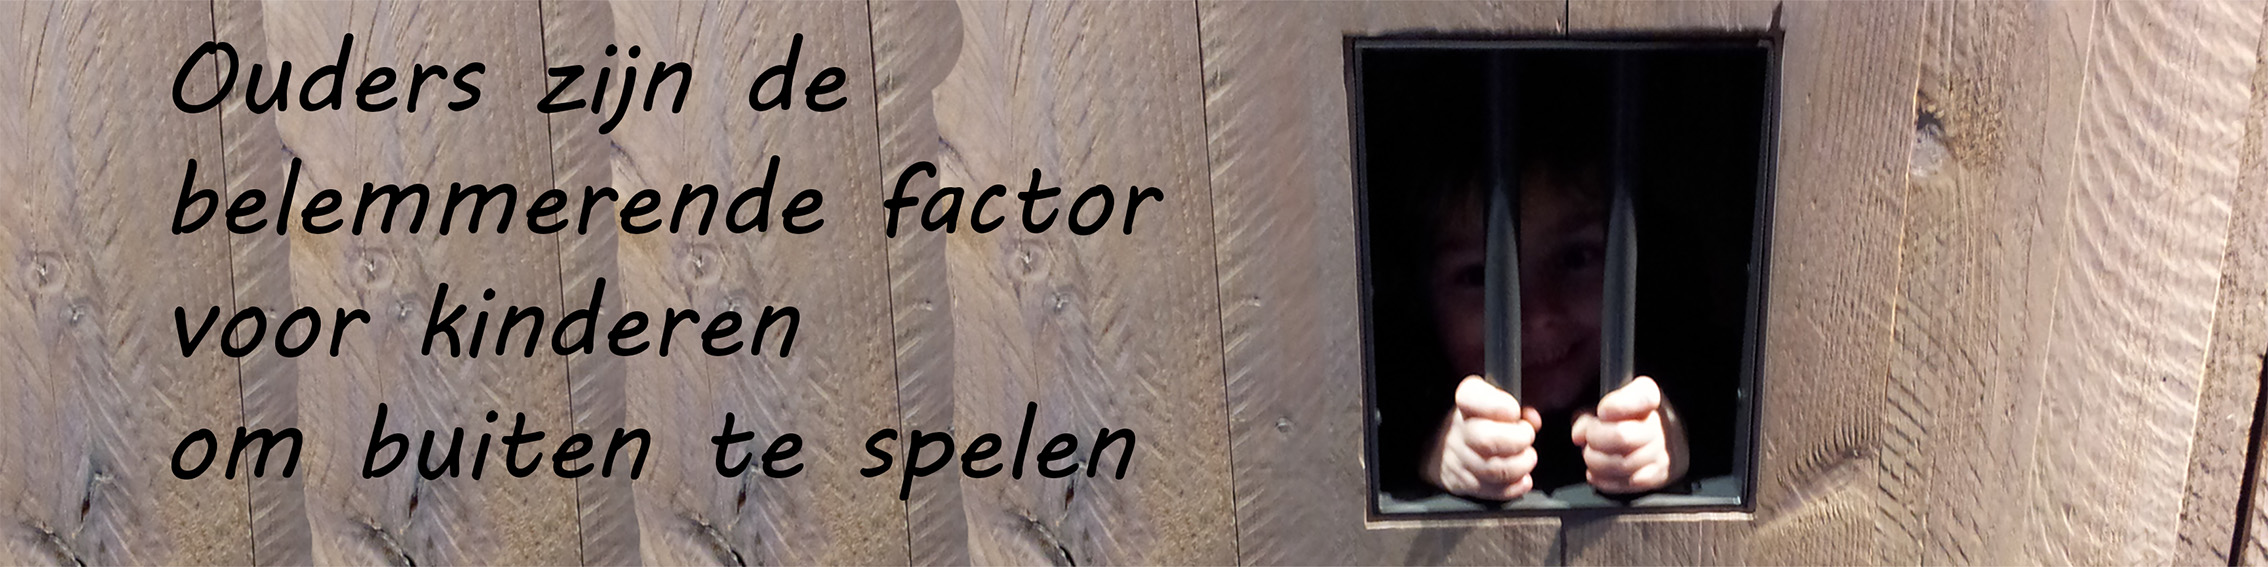 Ouders belemmerende factor